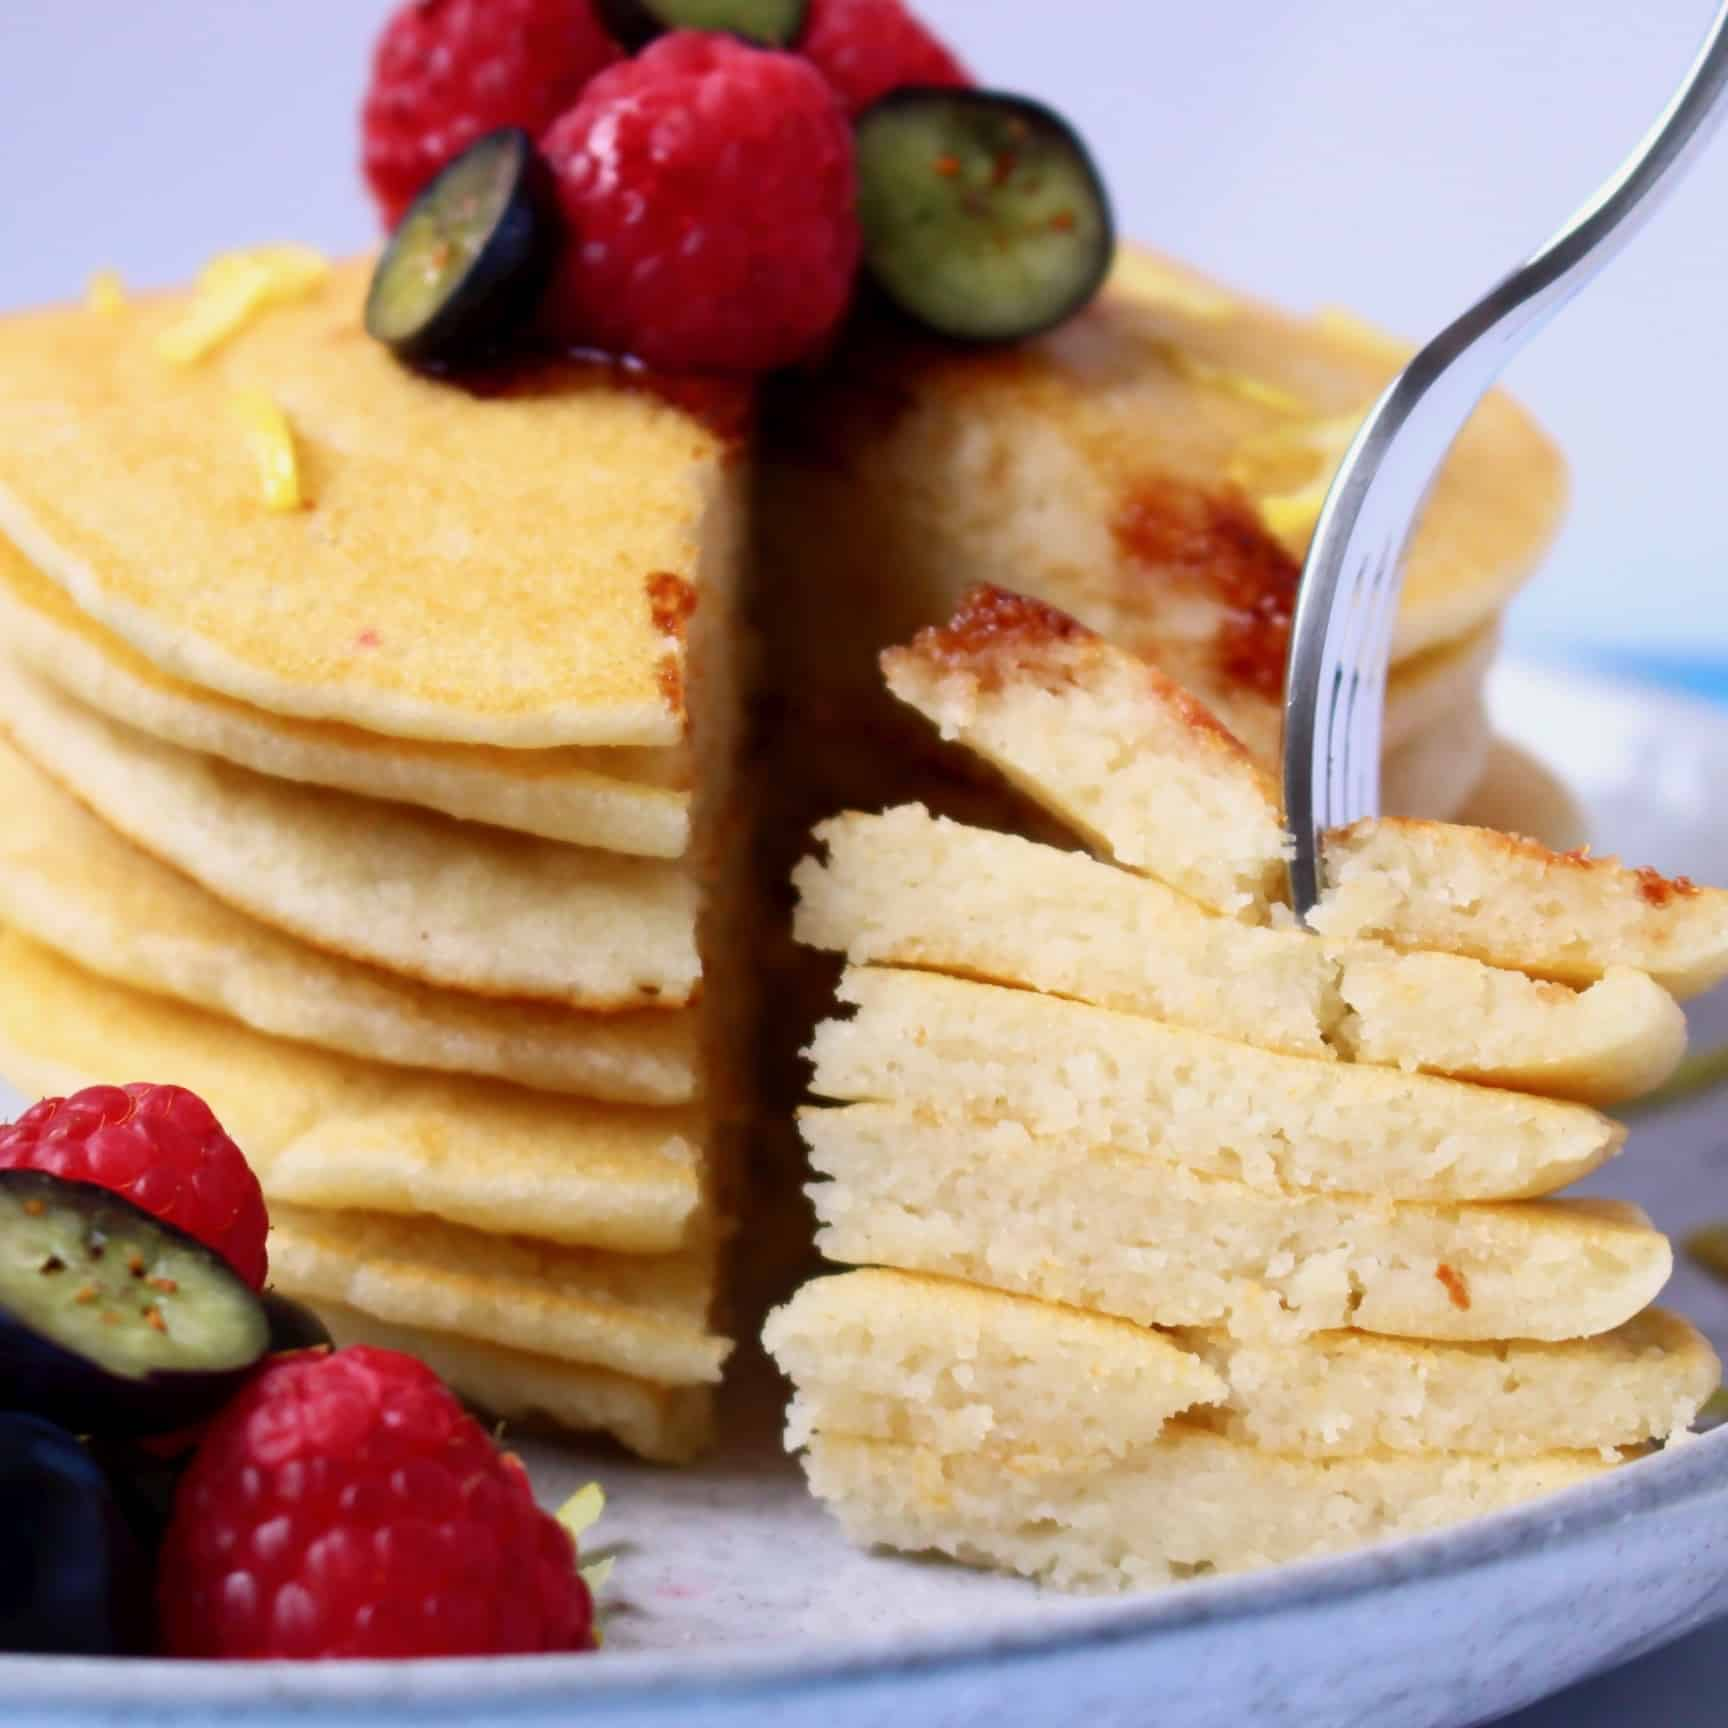 A stack of gluten-free vegan pancakes with a fork sticking into a slice of them